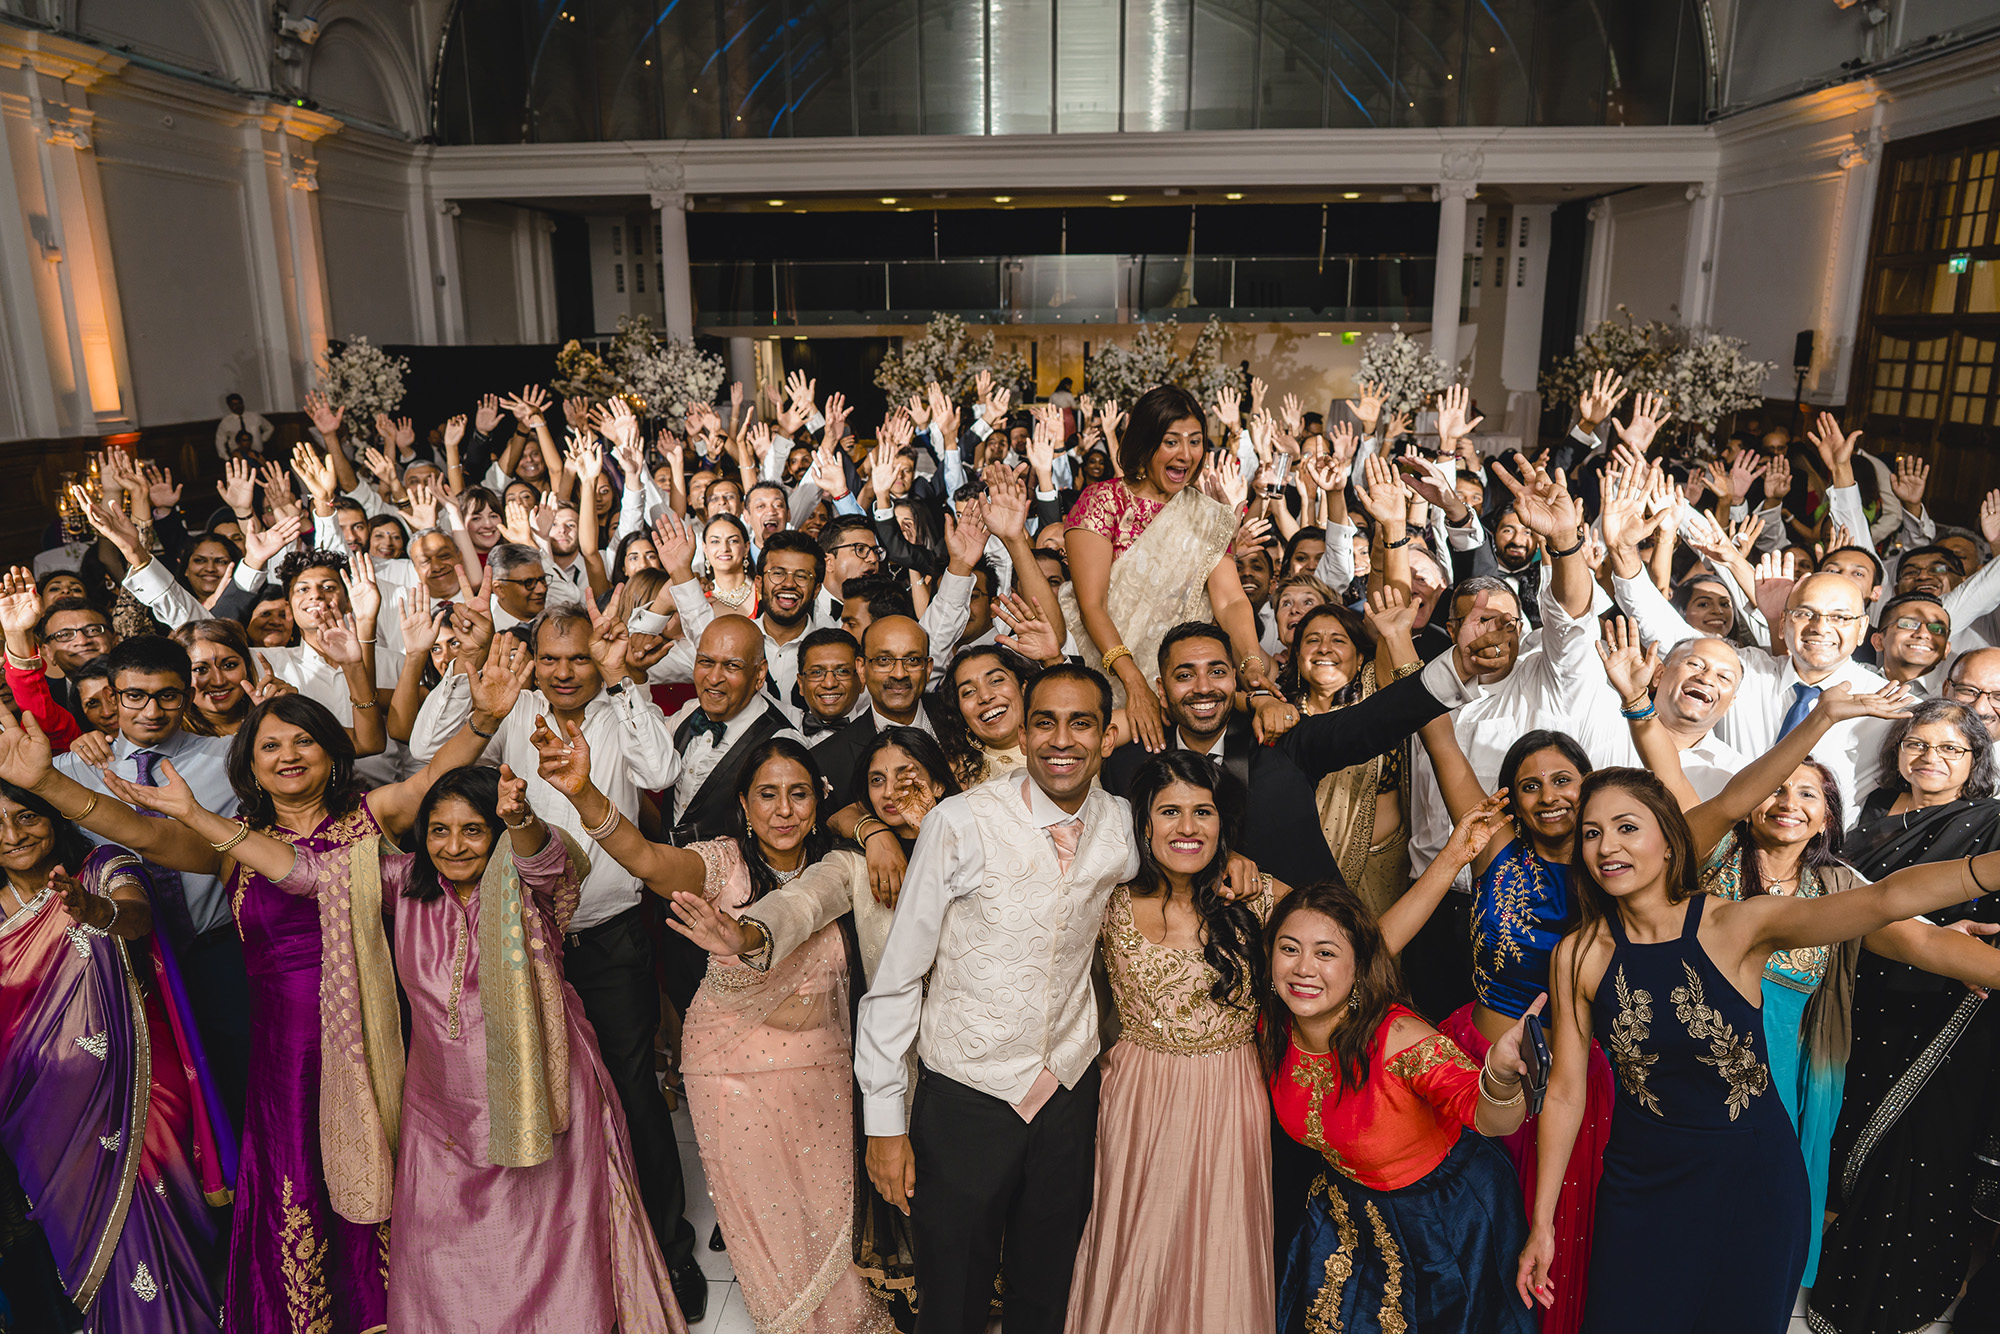 group photograph with all guests at wedding reception